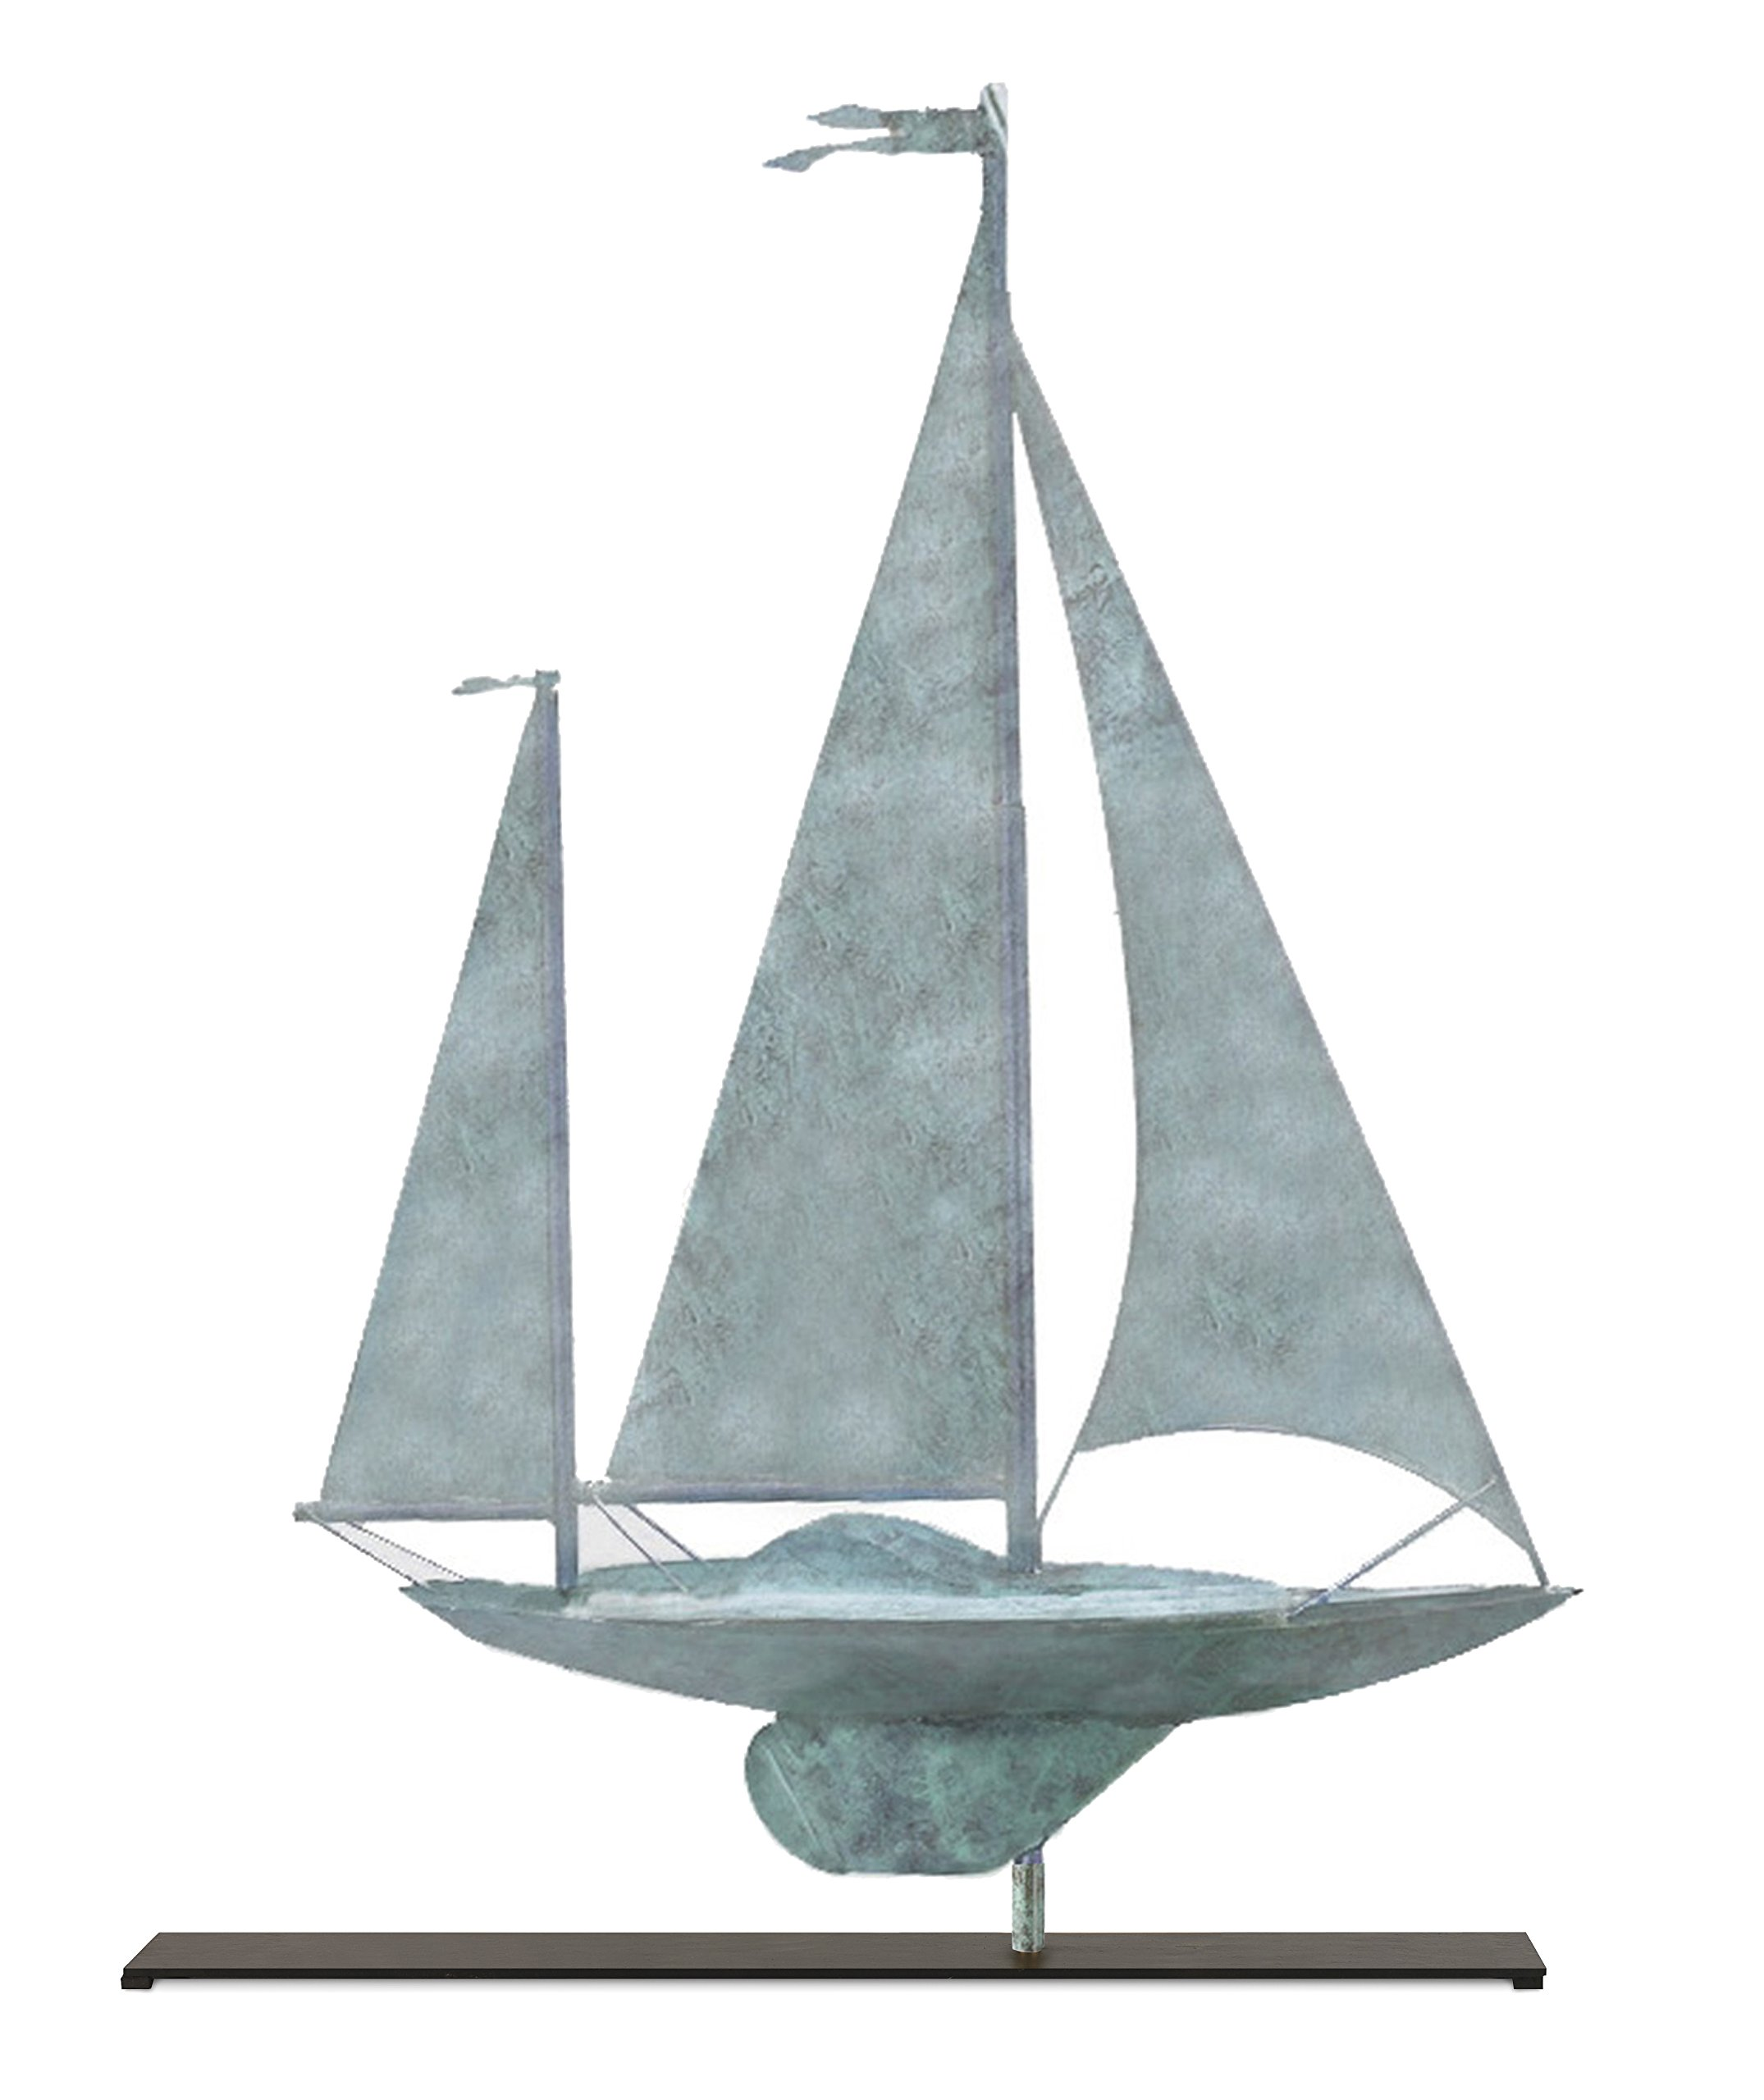 Good Directions Yawl Weathervane Sculpture on Mantel / Fireplace Stand, Blue Verde Pure Copper, Nautical Home Décor, Tabletop Accent